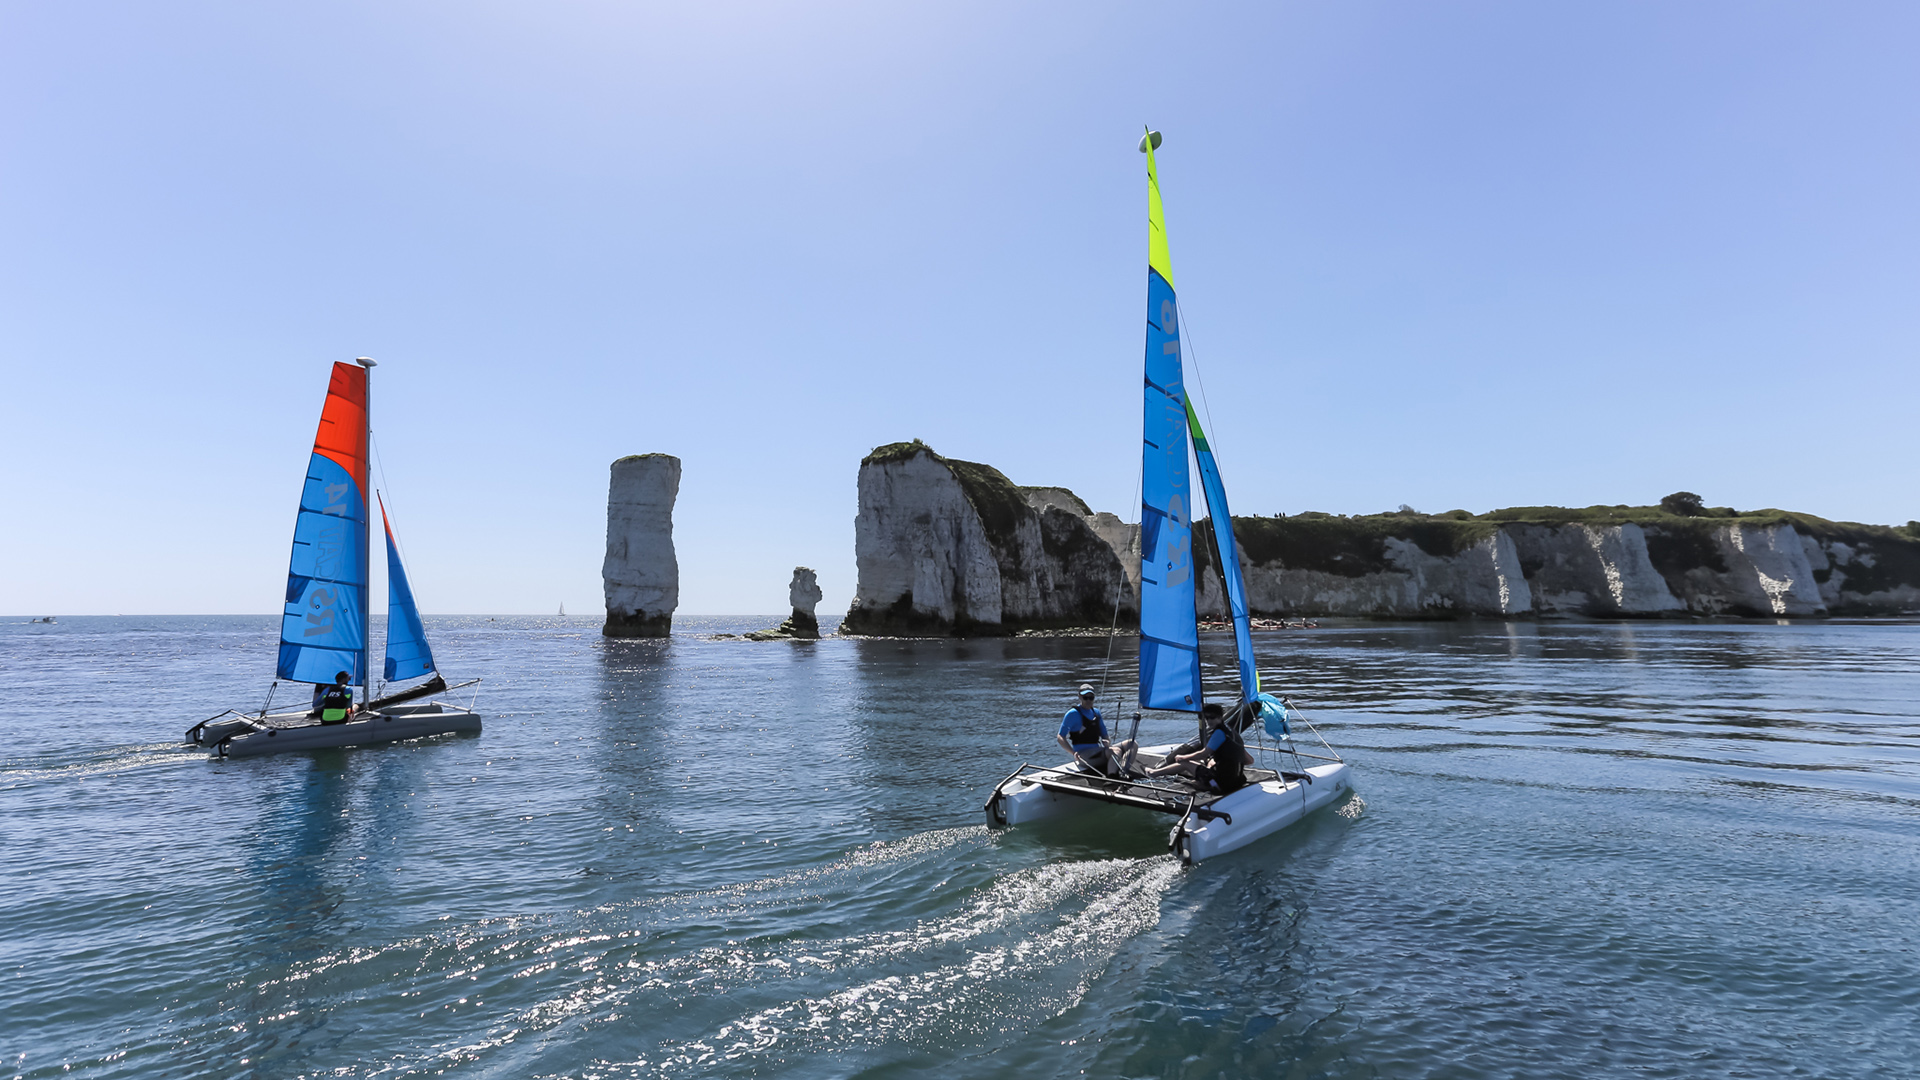 RS CAT 16 – the most stylish, easy, exciting for clubs and families